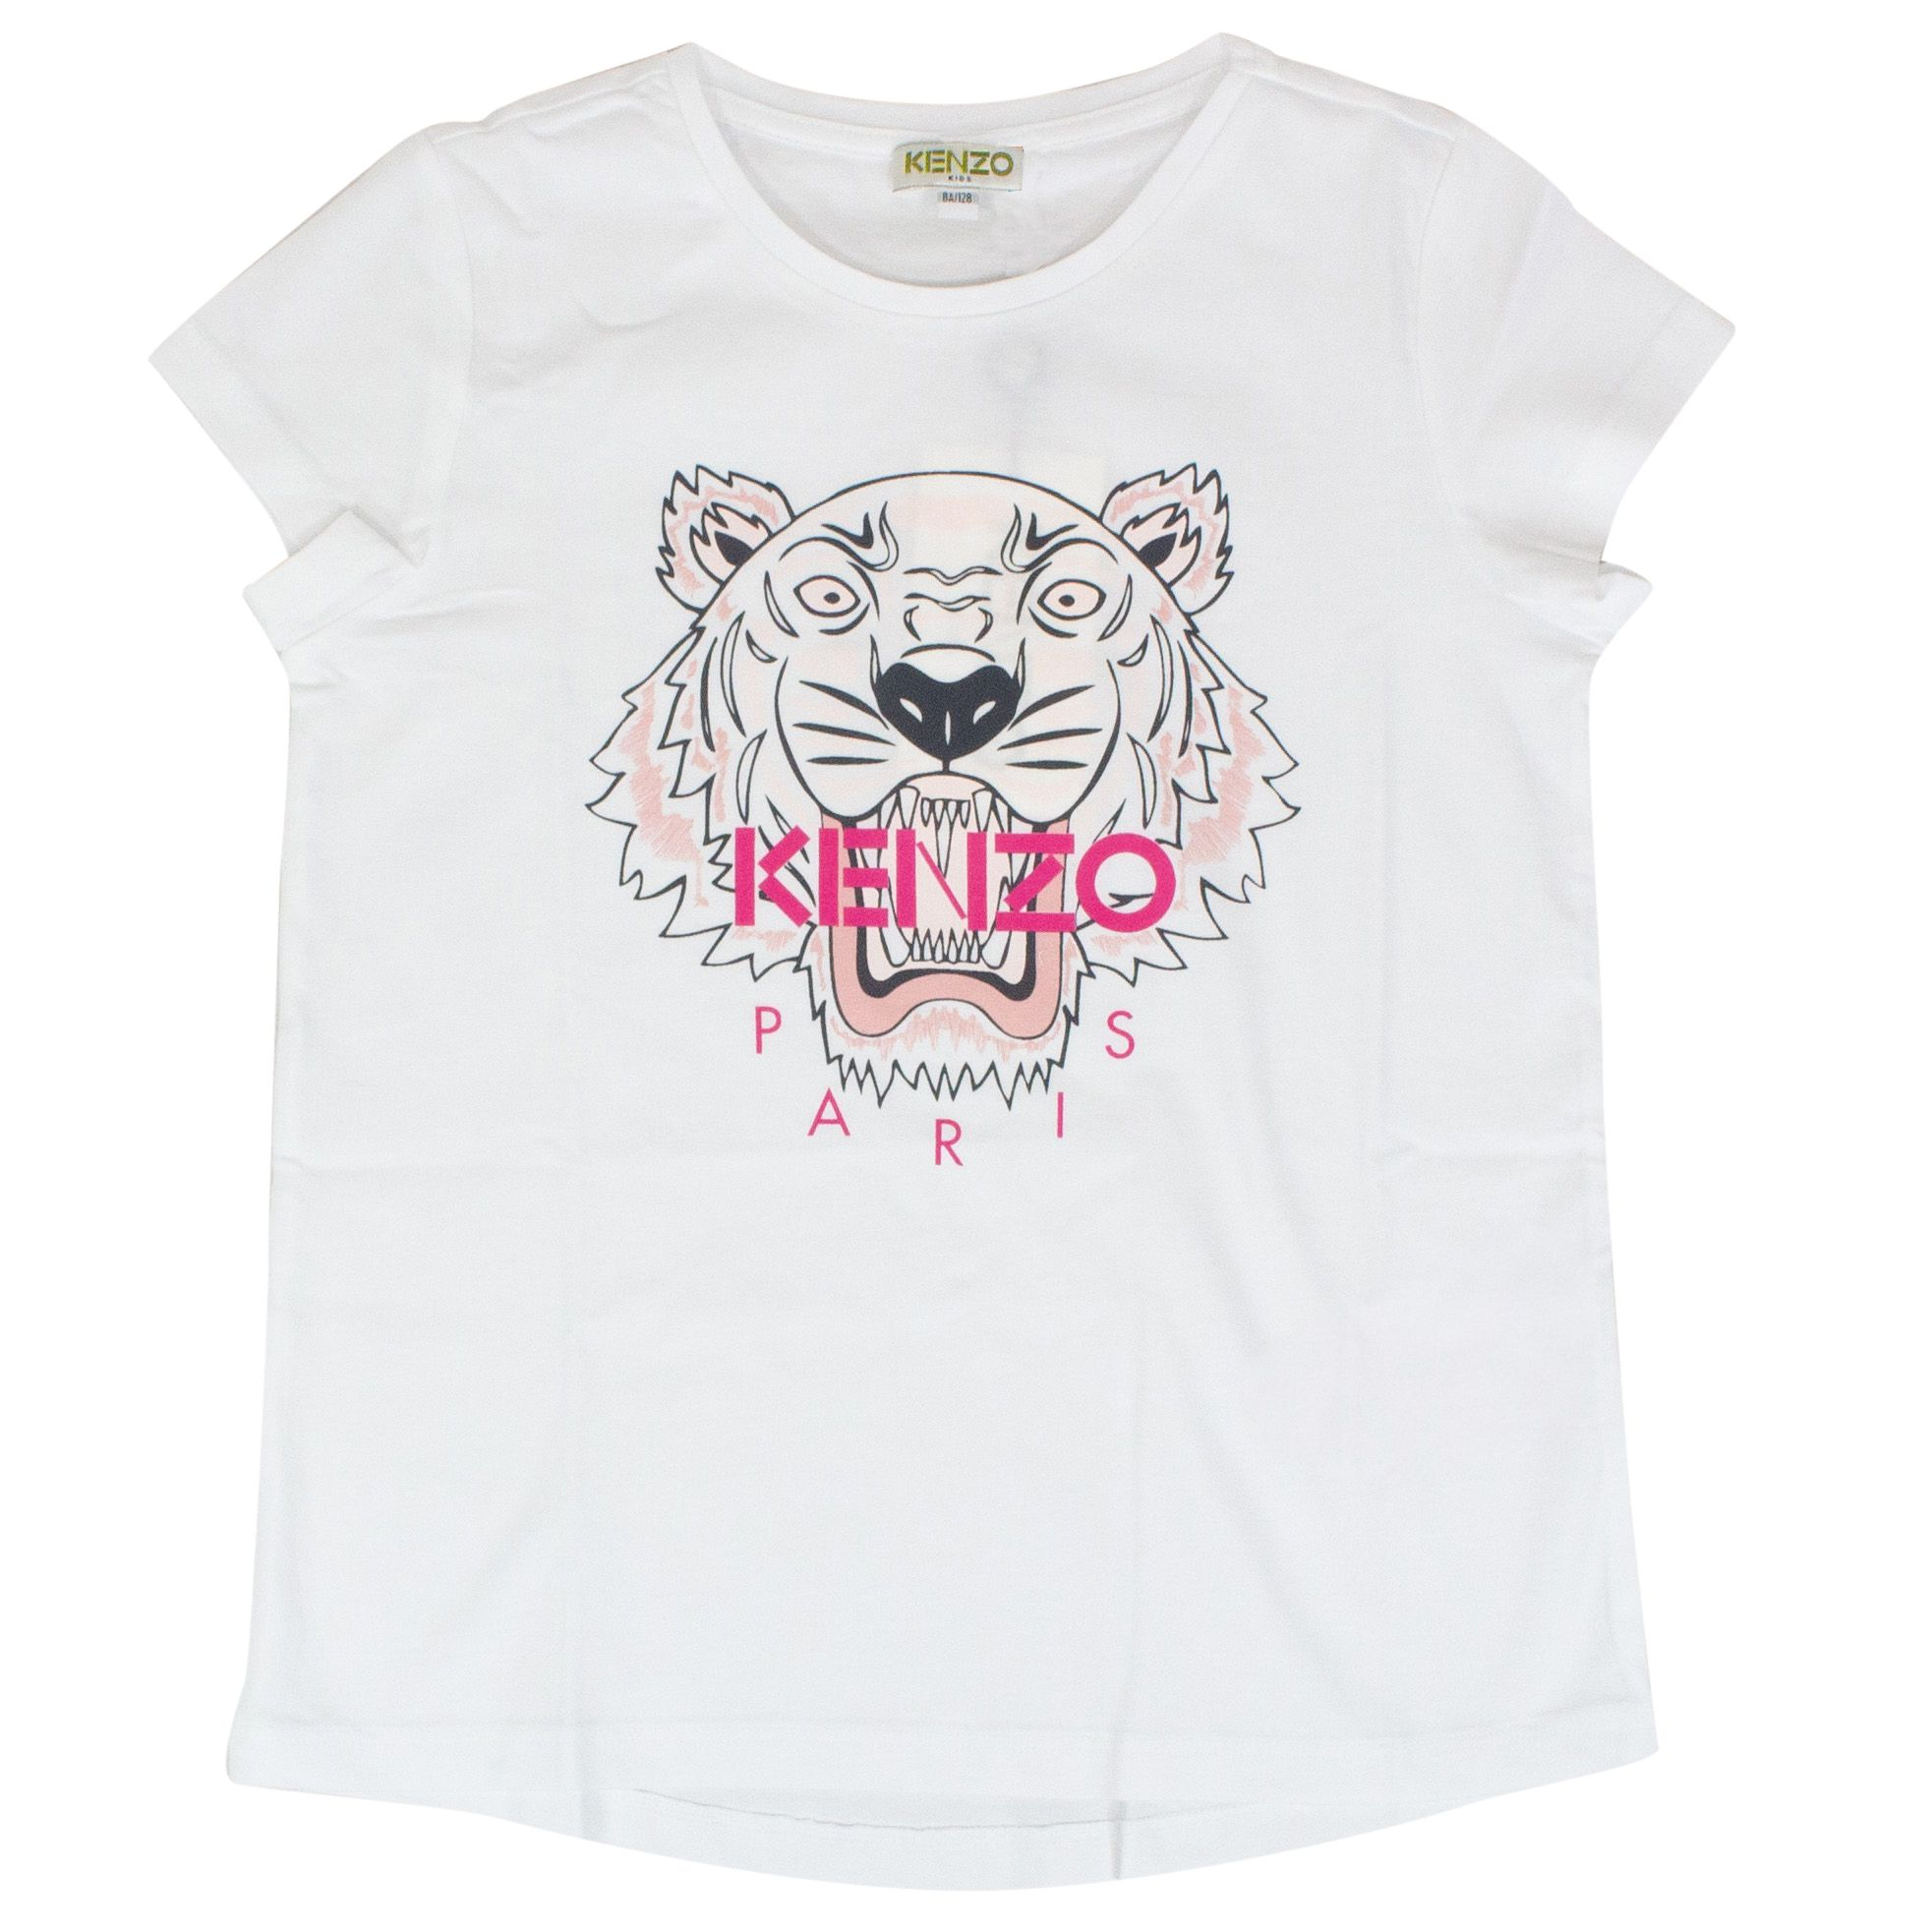 b947ad7e2 T-shirt with contrasting Tiger print